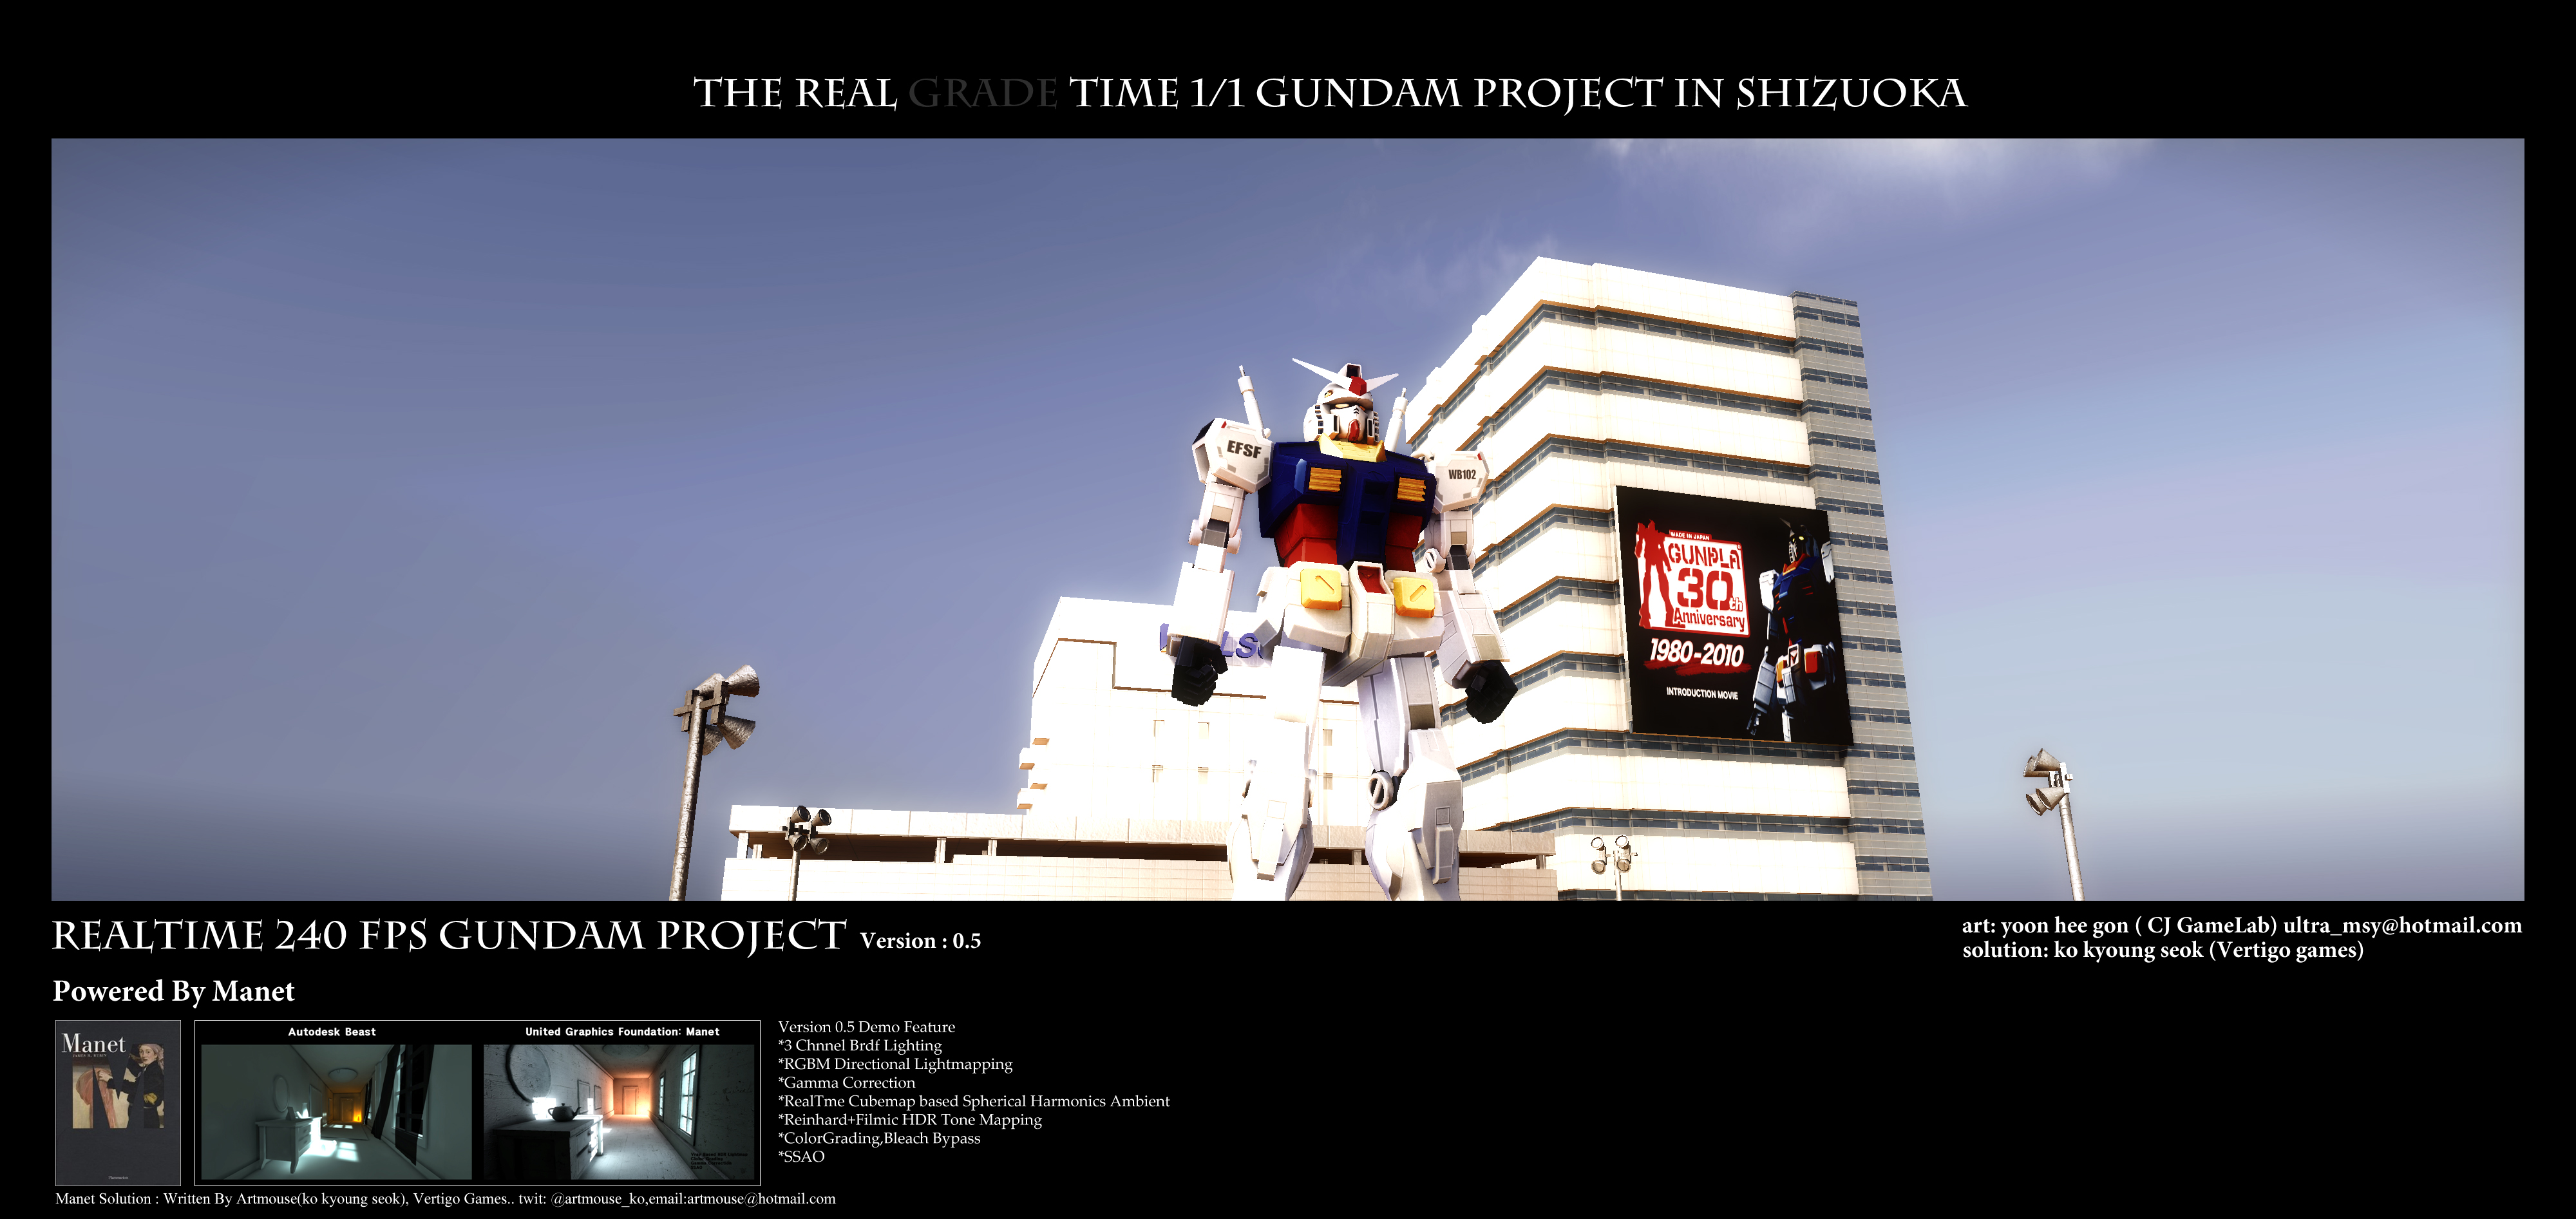 REAL TIME 1:1 Tokyo Gundam Project 2012